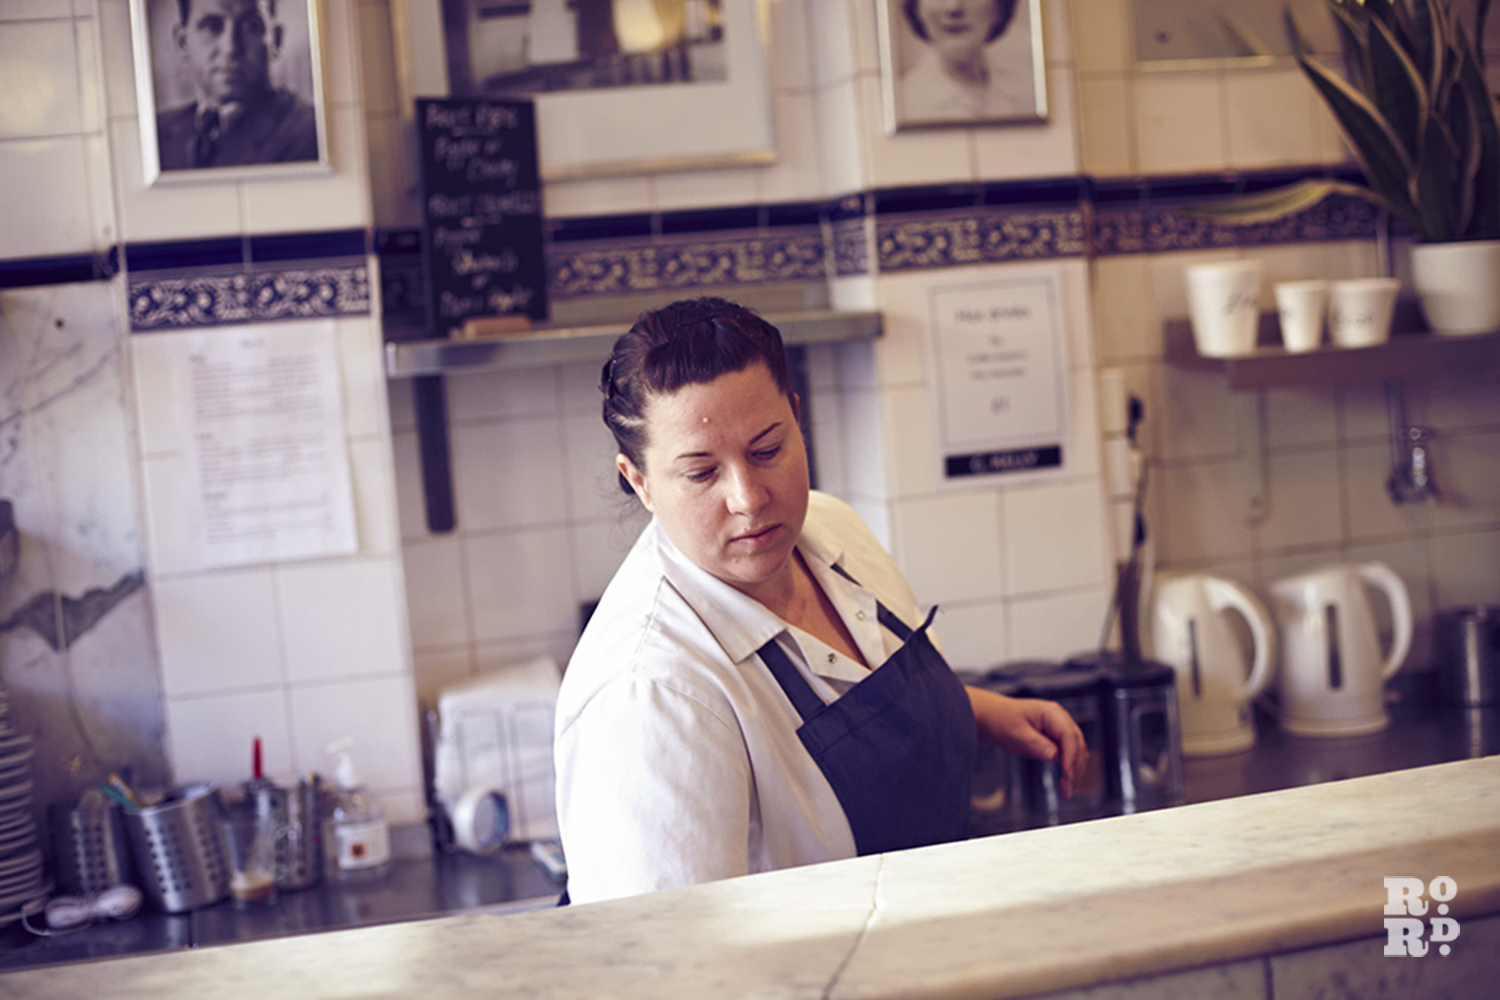 Leanne serving pie, mash and liquor at Roman Road's GKelly's pie and mash shop, East London